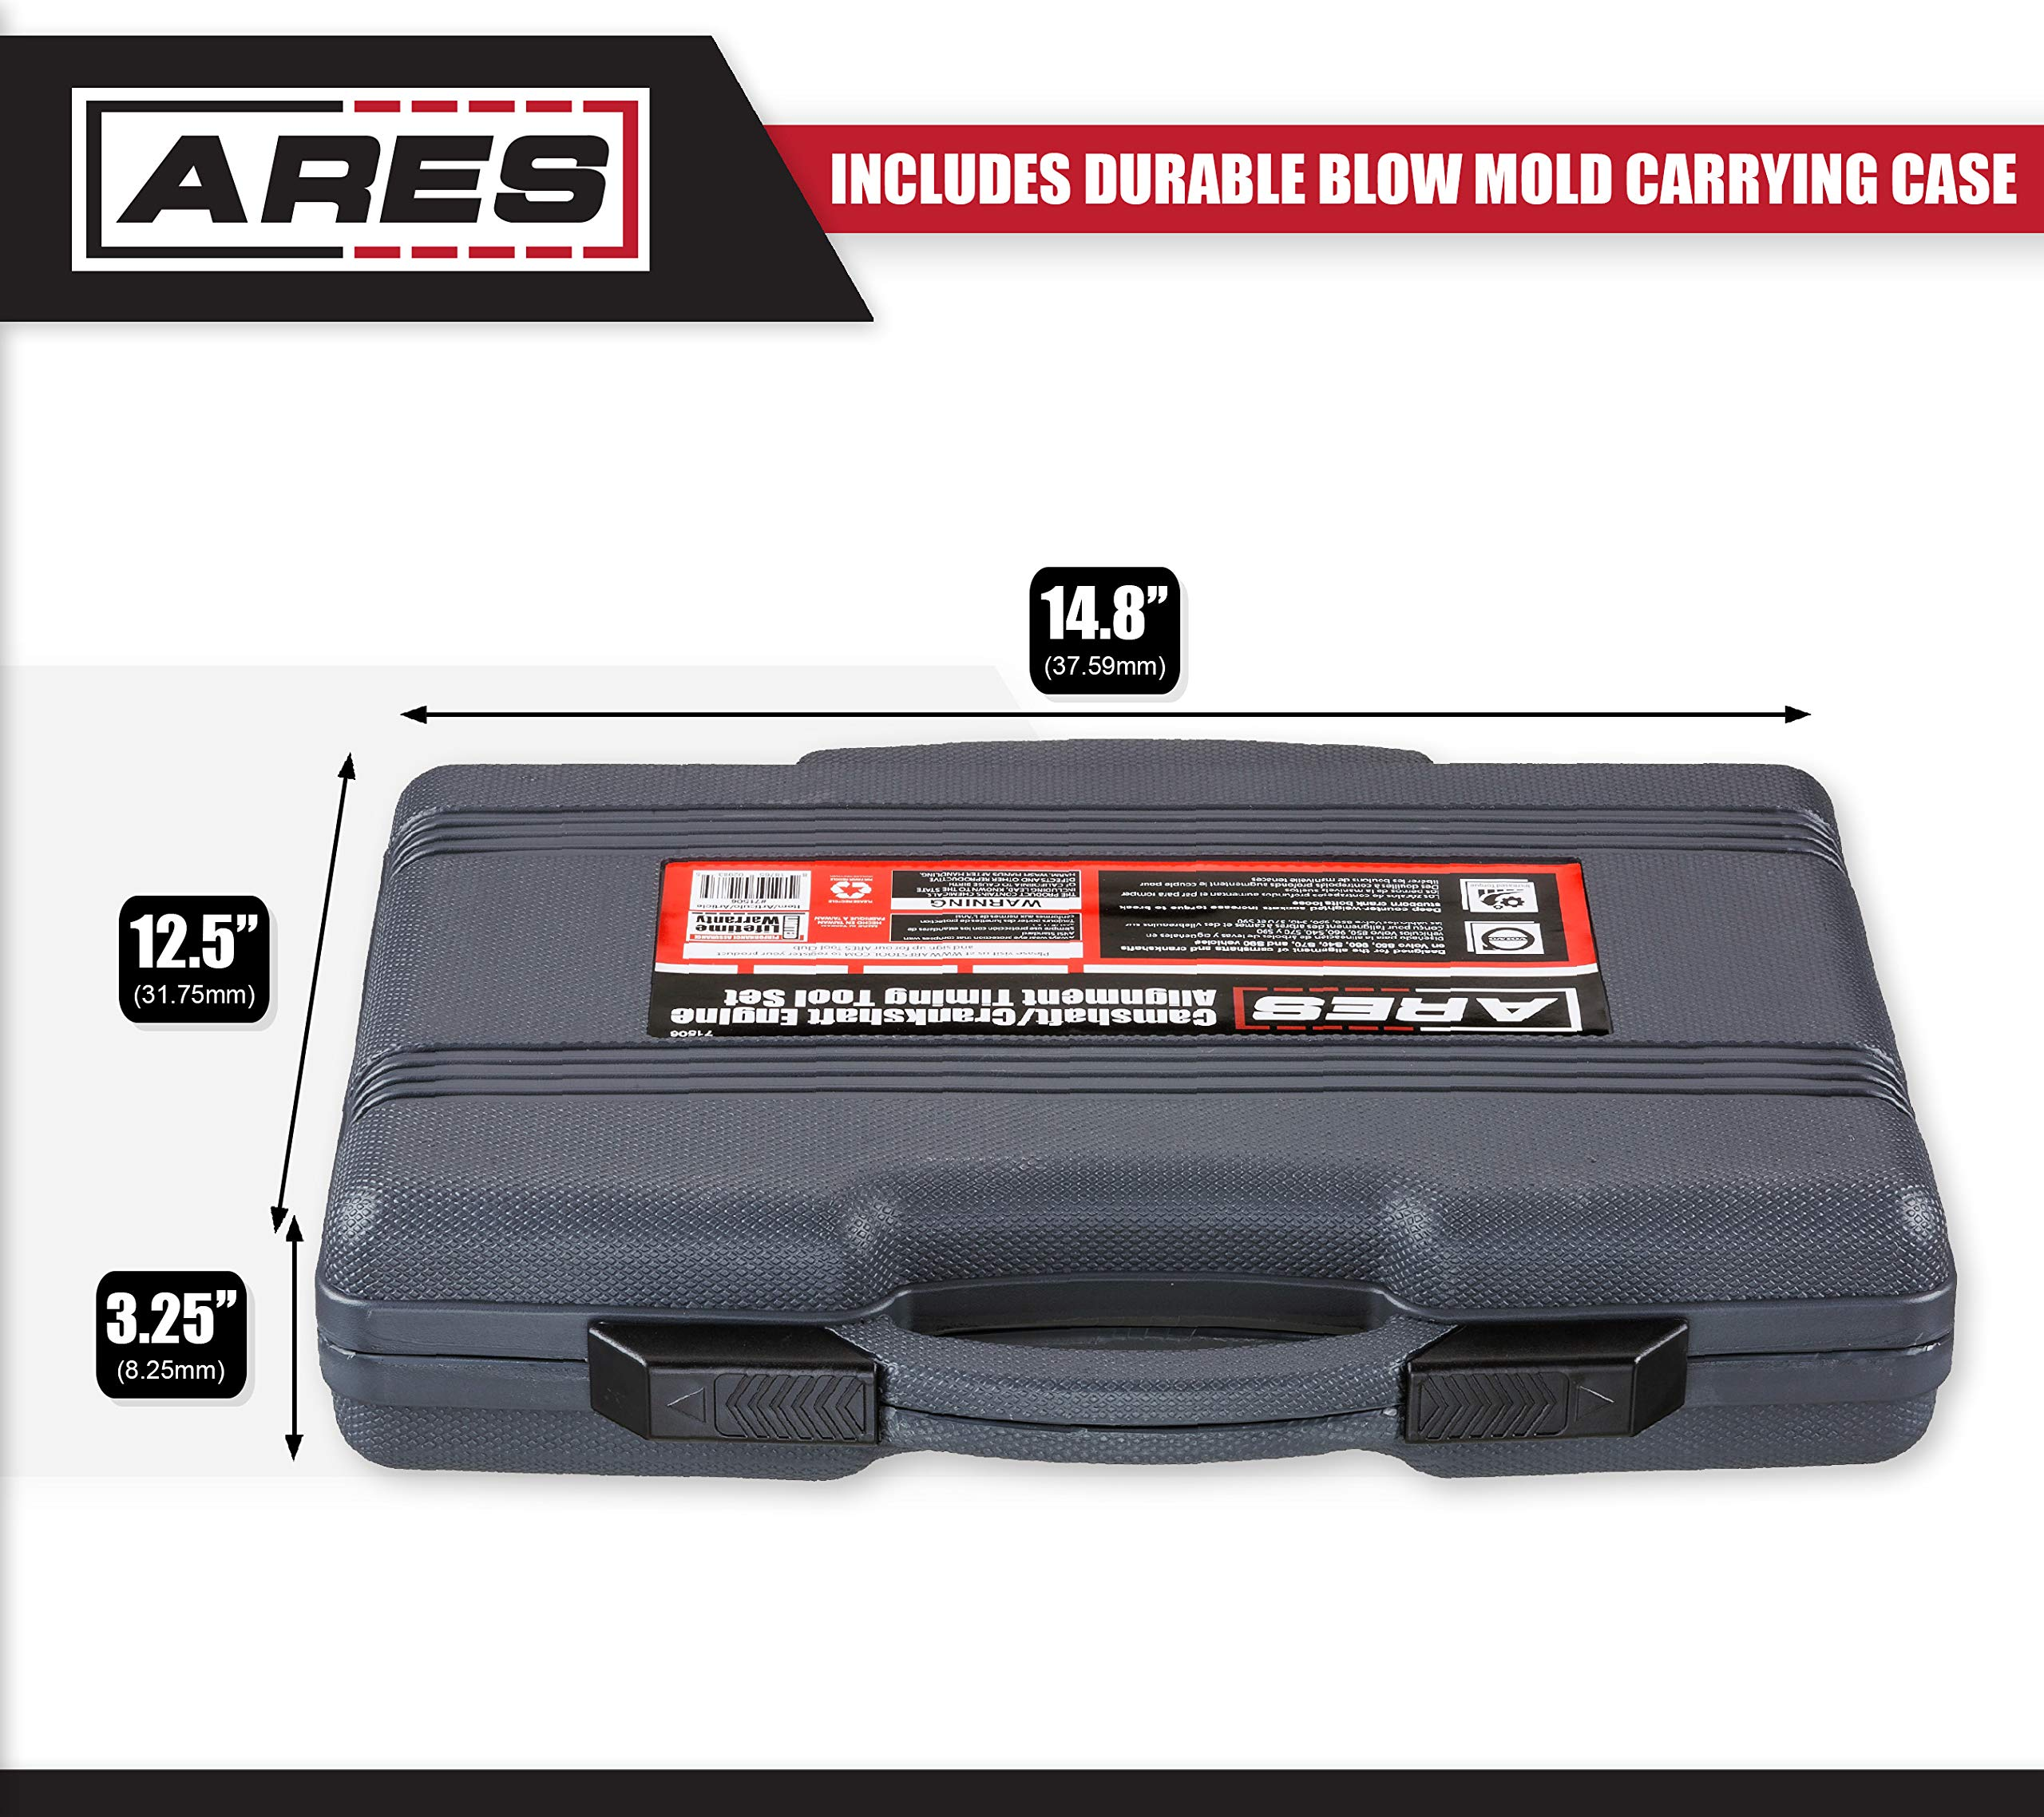 ARES 71506 | Volvo Camshaft, Crankshaft, and Timing Alignment Master Tool Set | Deep Counter-Weighted Sockets for Increased Torque | Correctly Install Camshafts with Cam Cover by ARES (Image #3)